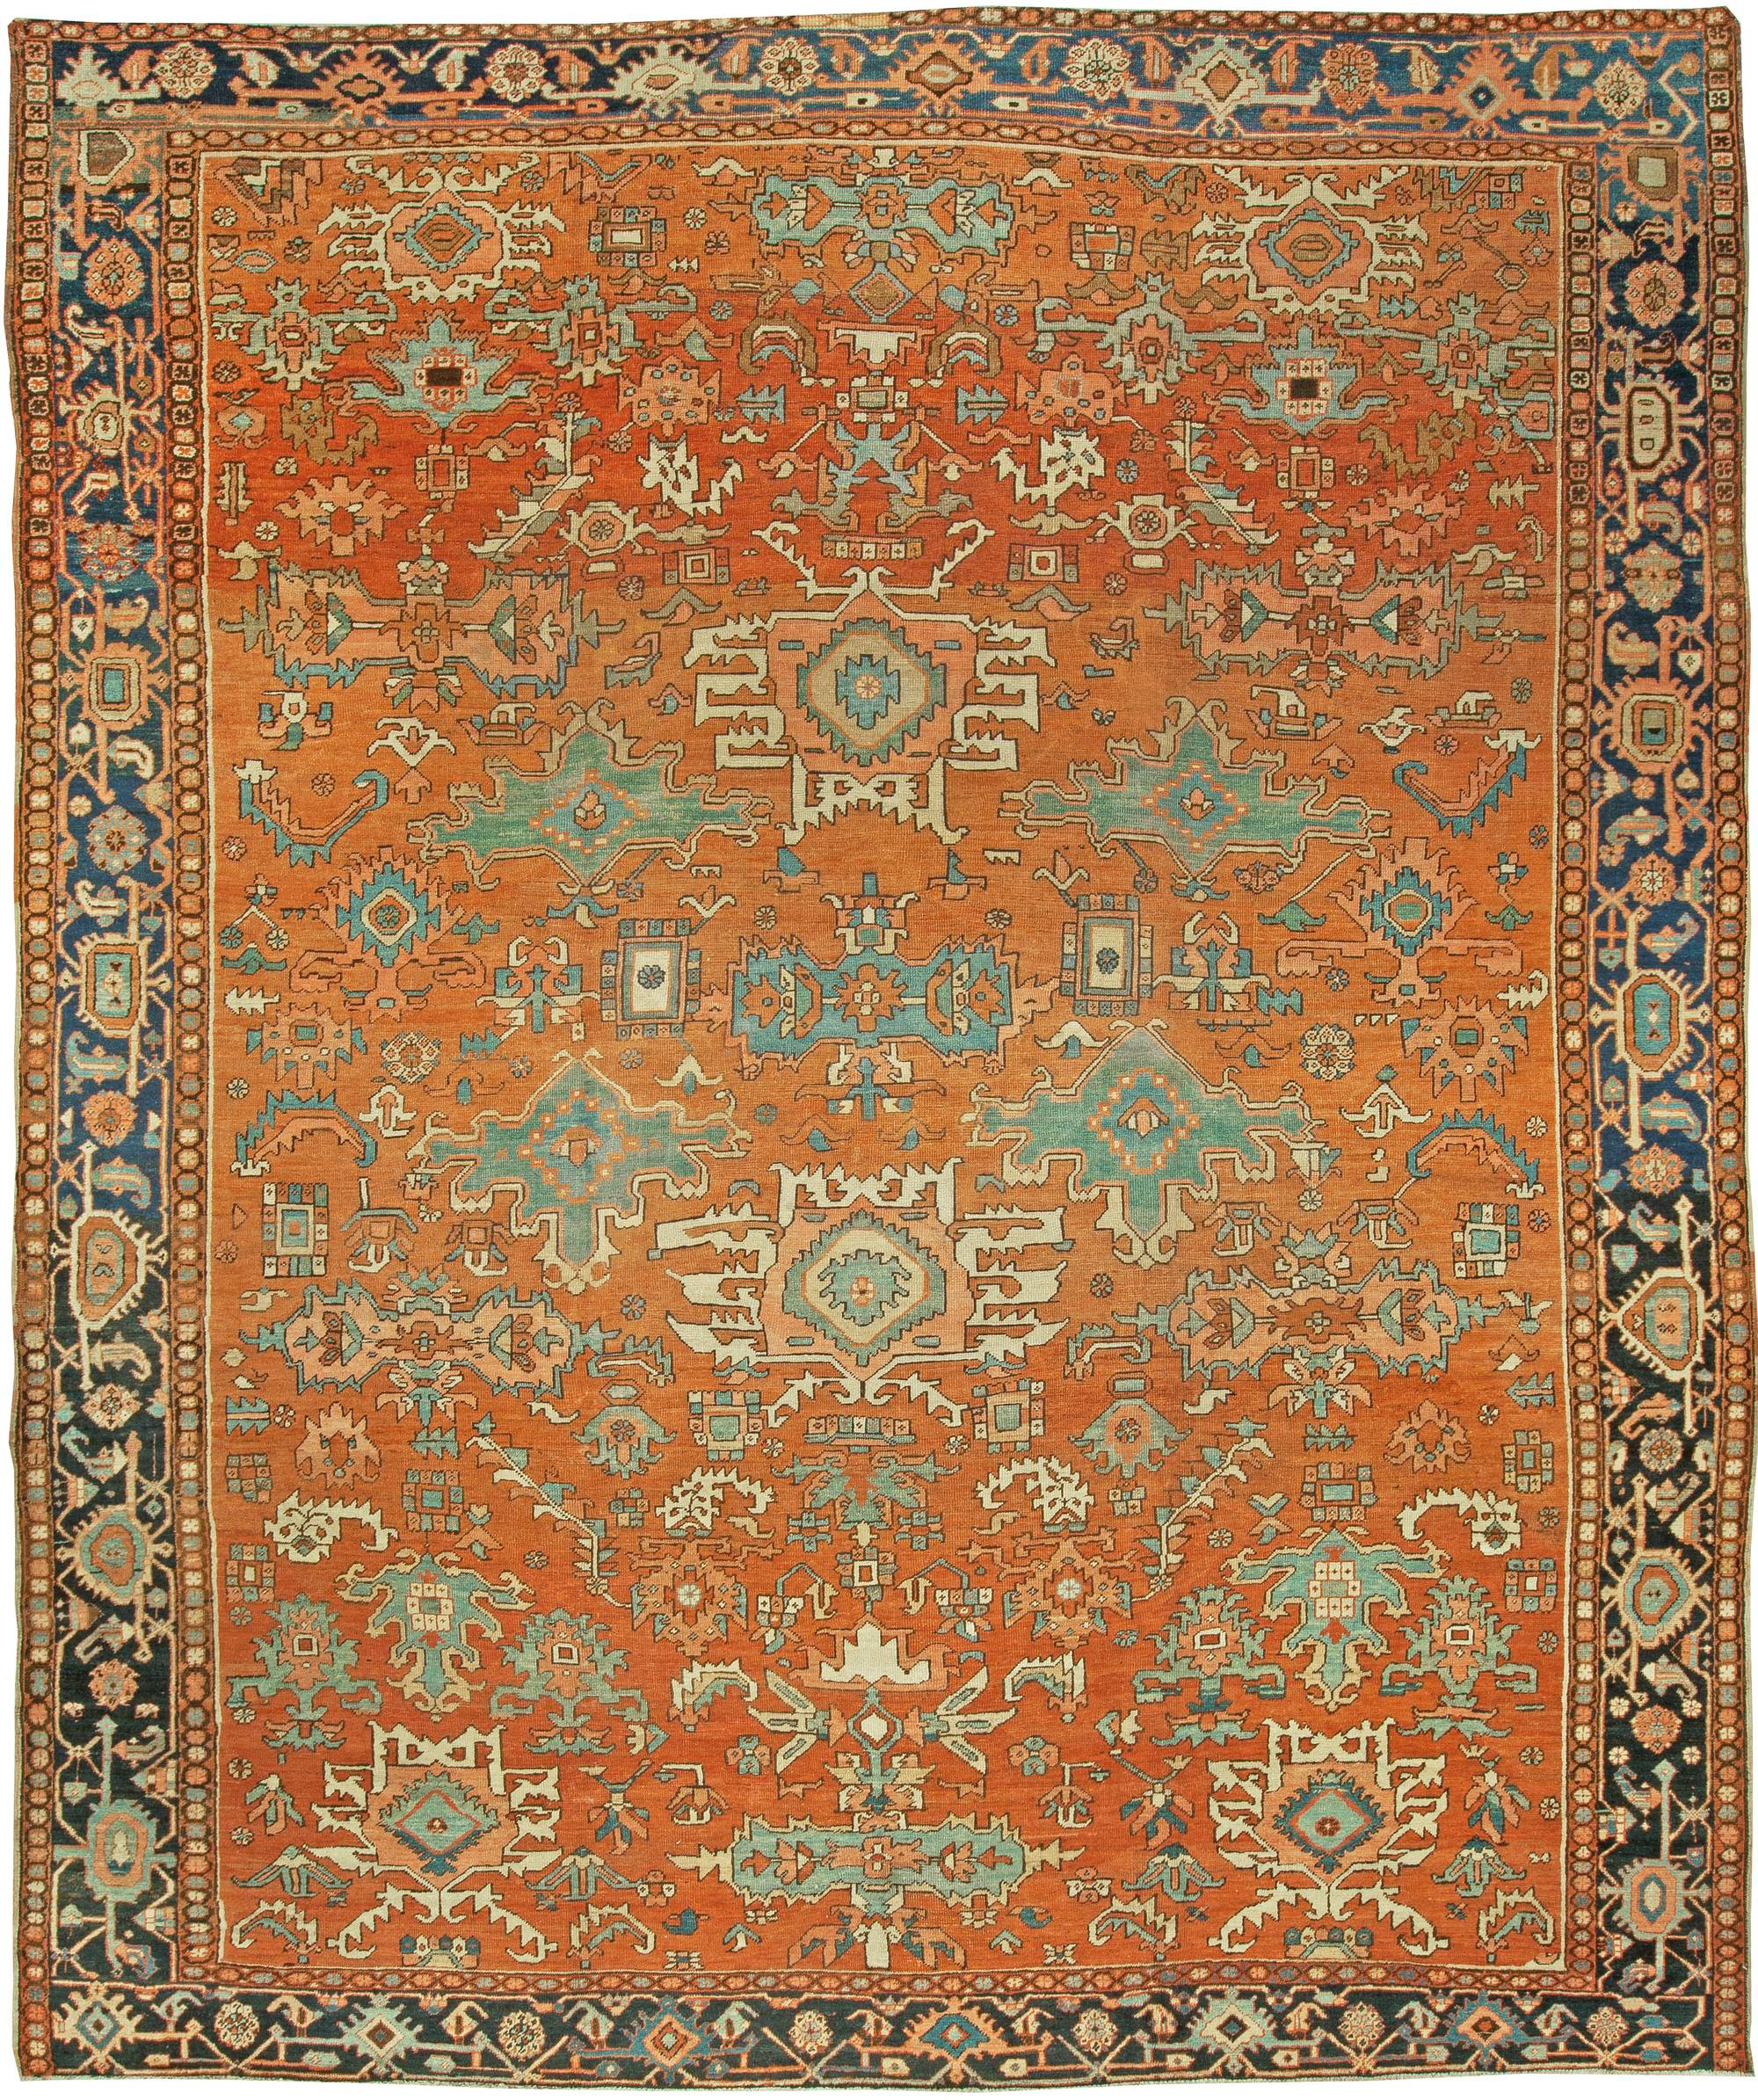 Antique Persian Heriz Rug BB5792 By Doris Leslie Blau